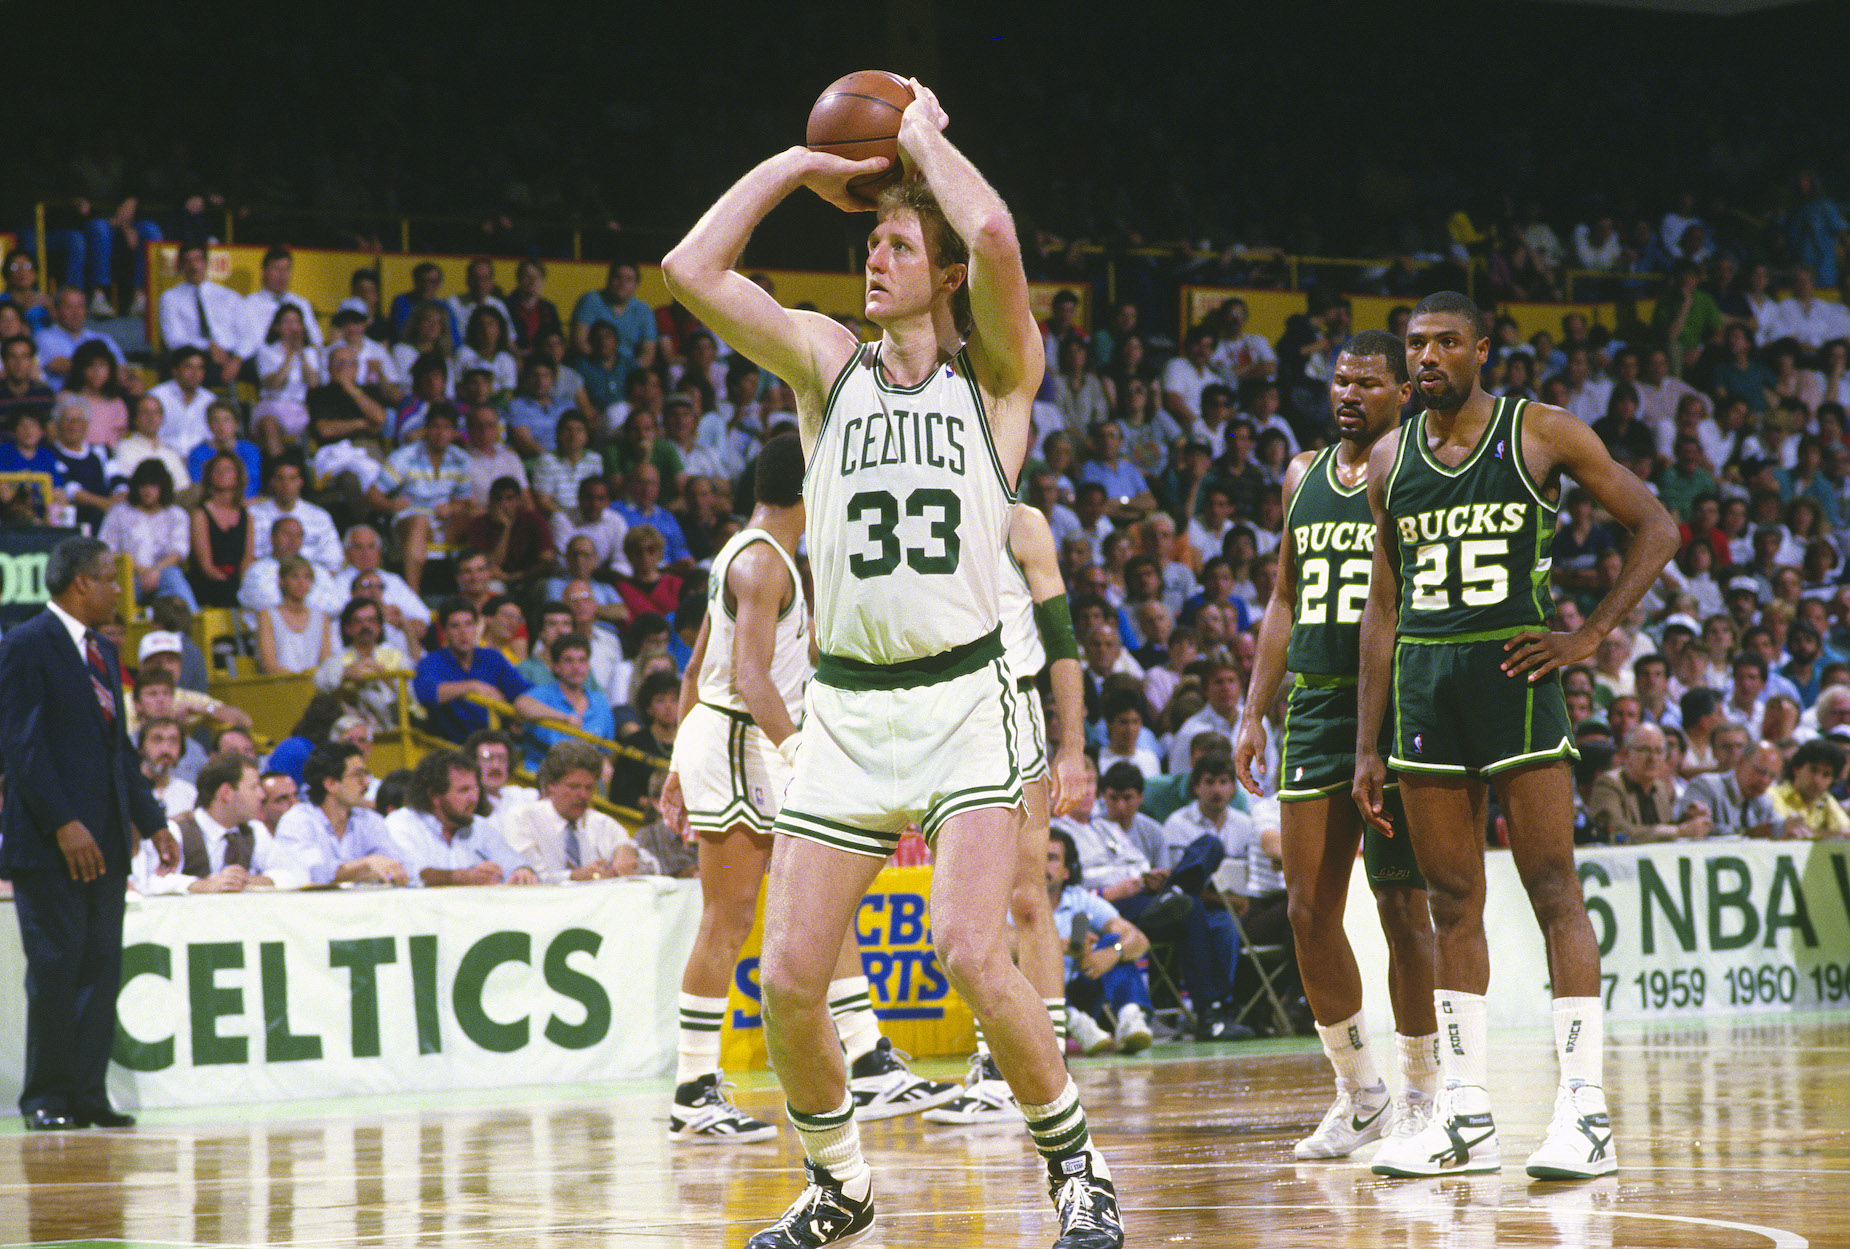 Even at the height of his success with the Boston Celtics, Larry Bird never forgot what it felt like to grow up poor.